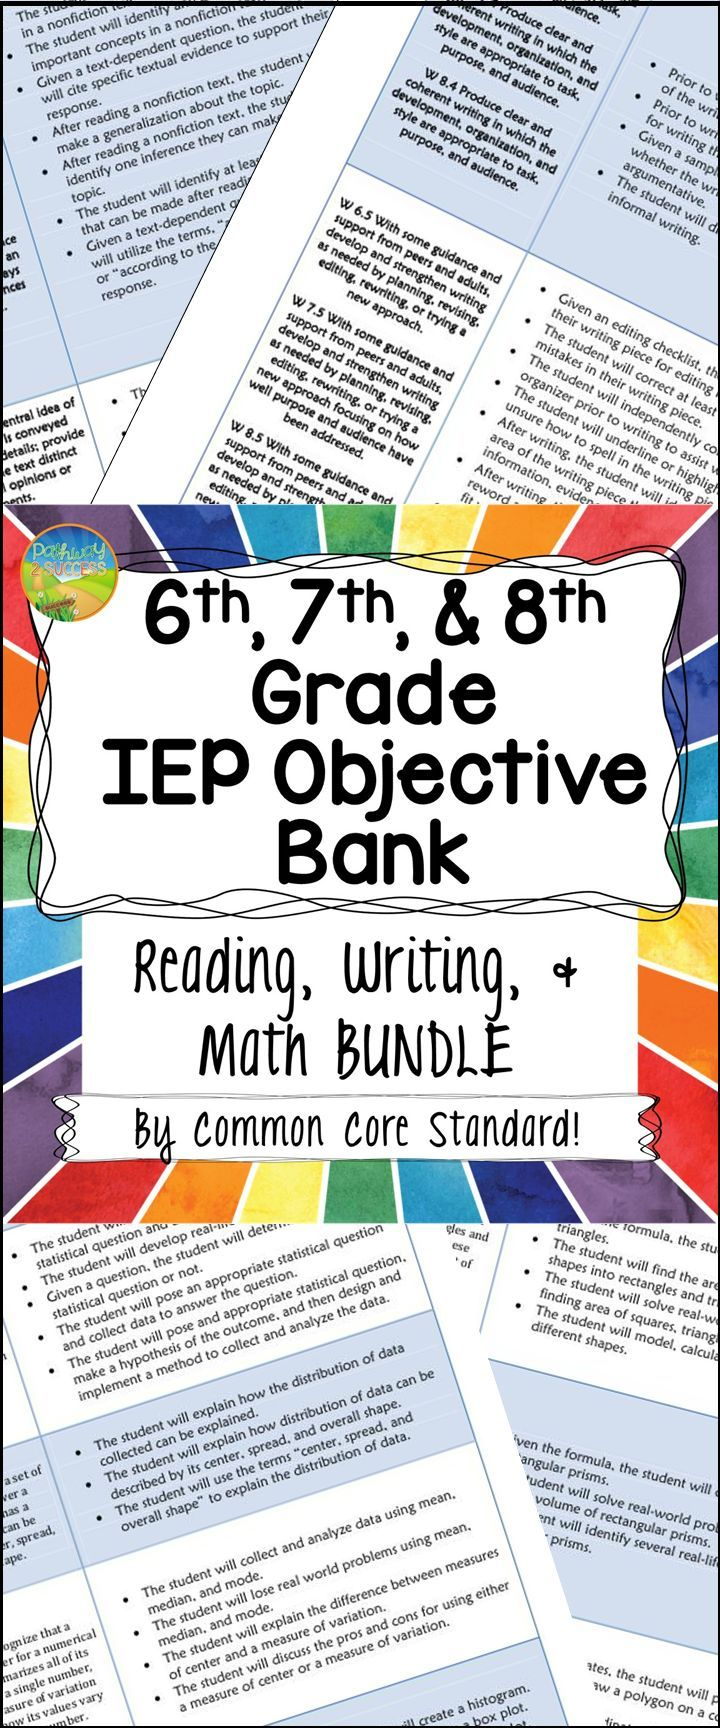 Middle school IEP Objective Bank BUNDLE with reading, writing, and math